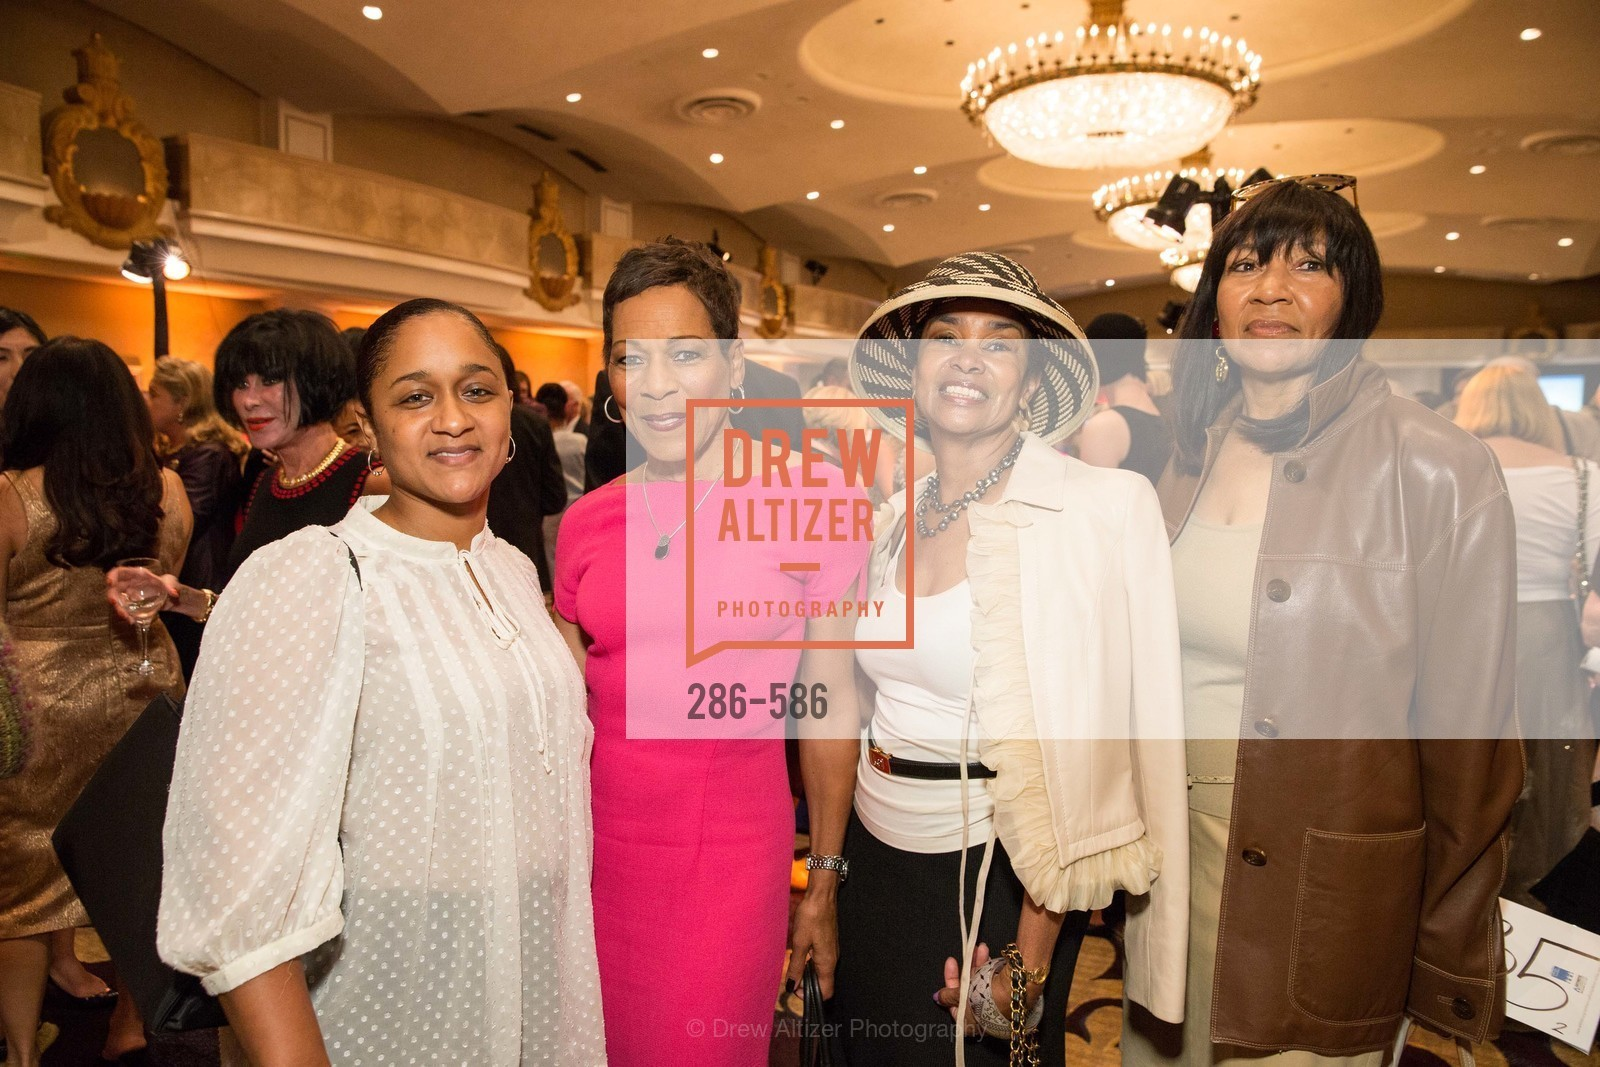 Ciara Coleman, Valerie Coleman Morris, Anette Harris, Deborah Hannah, 2014 Bay Area ARTHRITIS AUXILLIARY Benefit & Fashion Show, US, October 2nd, 2014,Drew Altizer, Drew Altizer Photography, full-service agency, private events, San Francisco photographer, photographer california